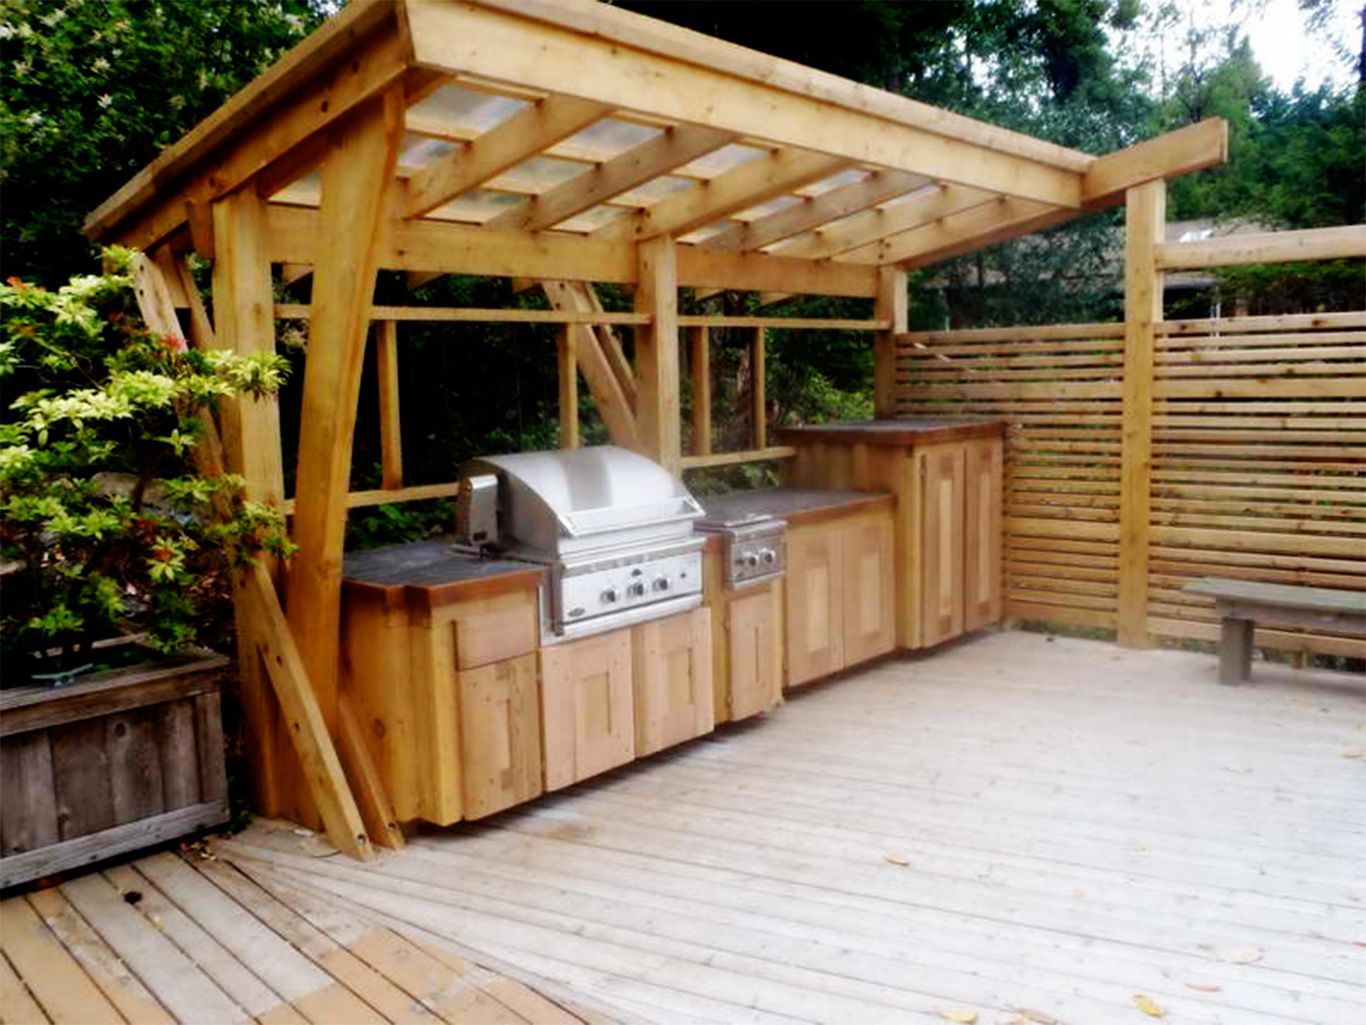 Uncategorized Outdoor Kitchen Designs tin roof outdoor kitchen design pergola ideas gazebo designs innovative outdoor